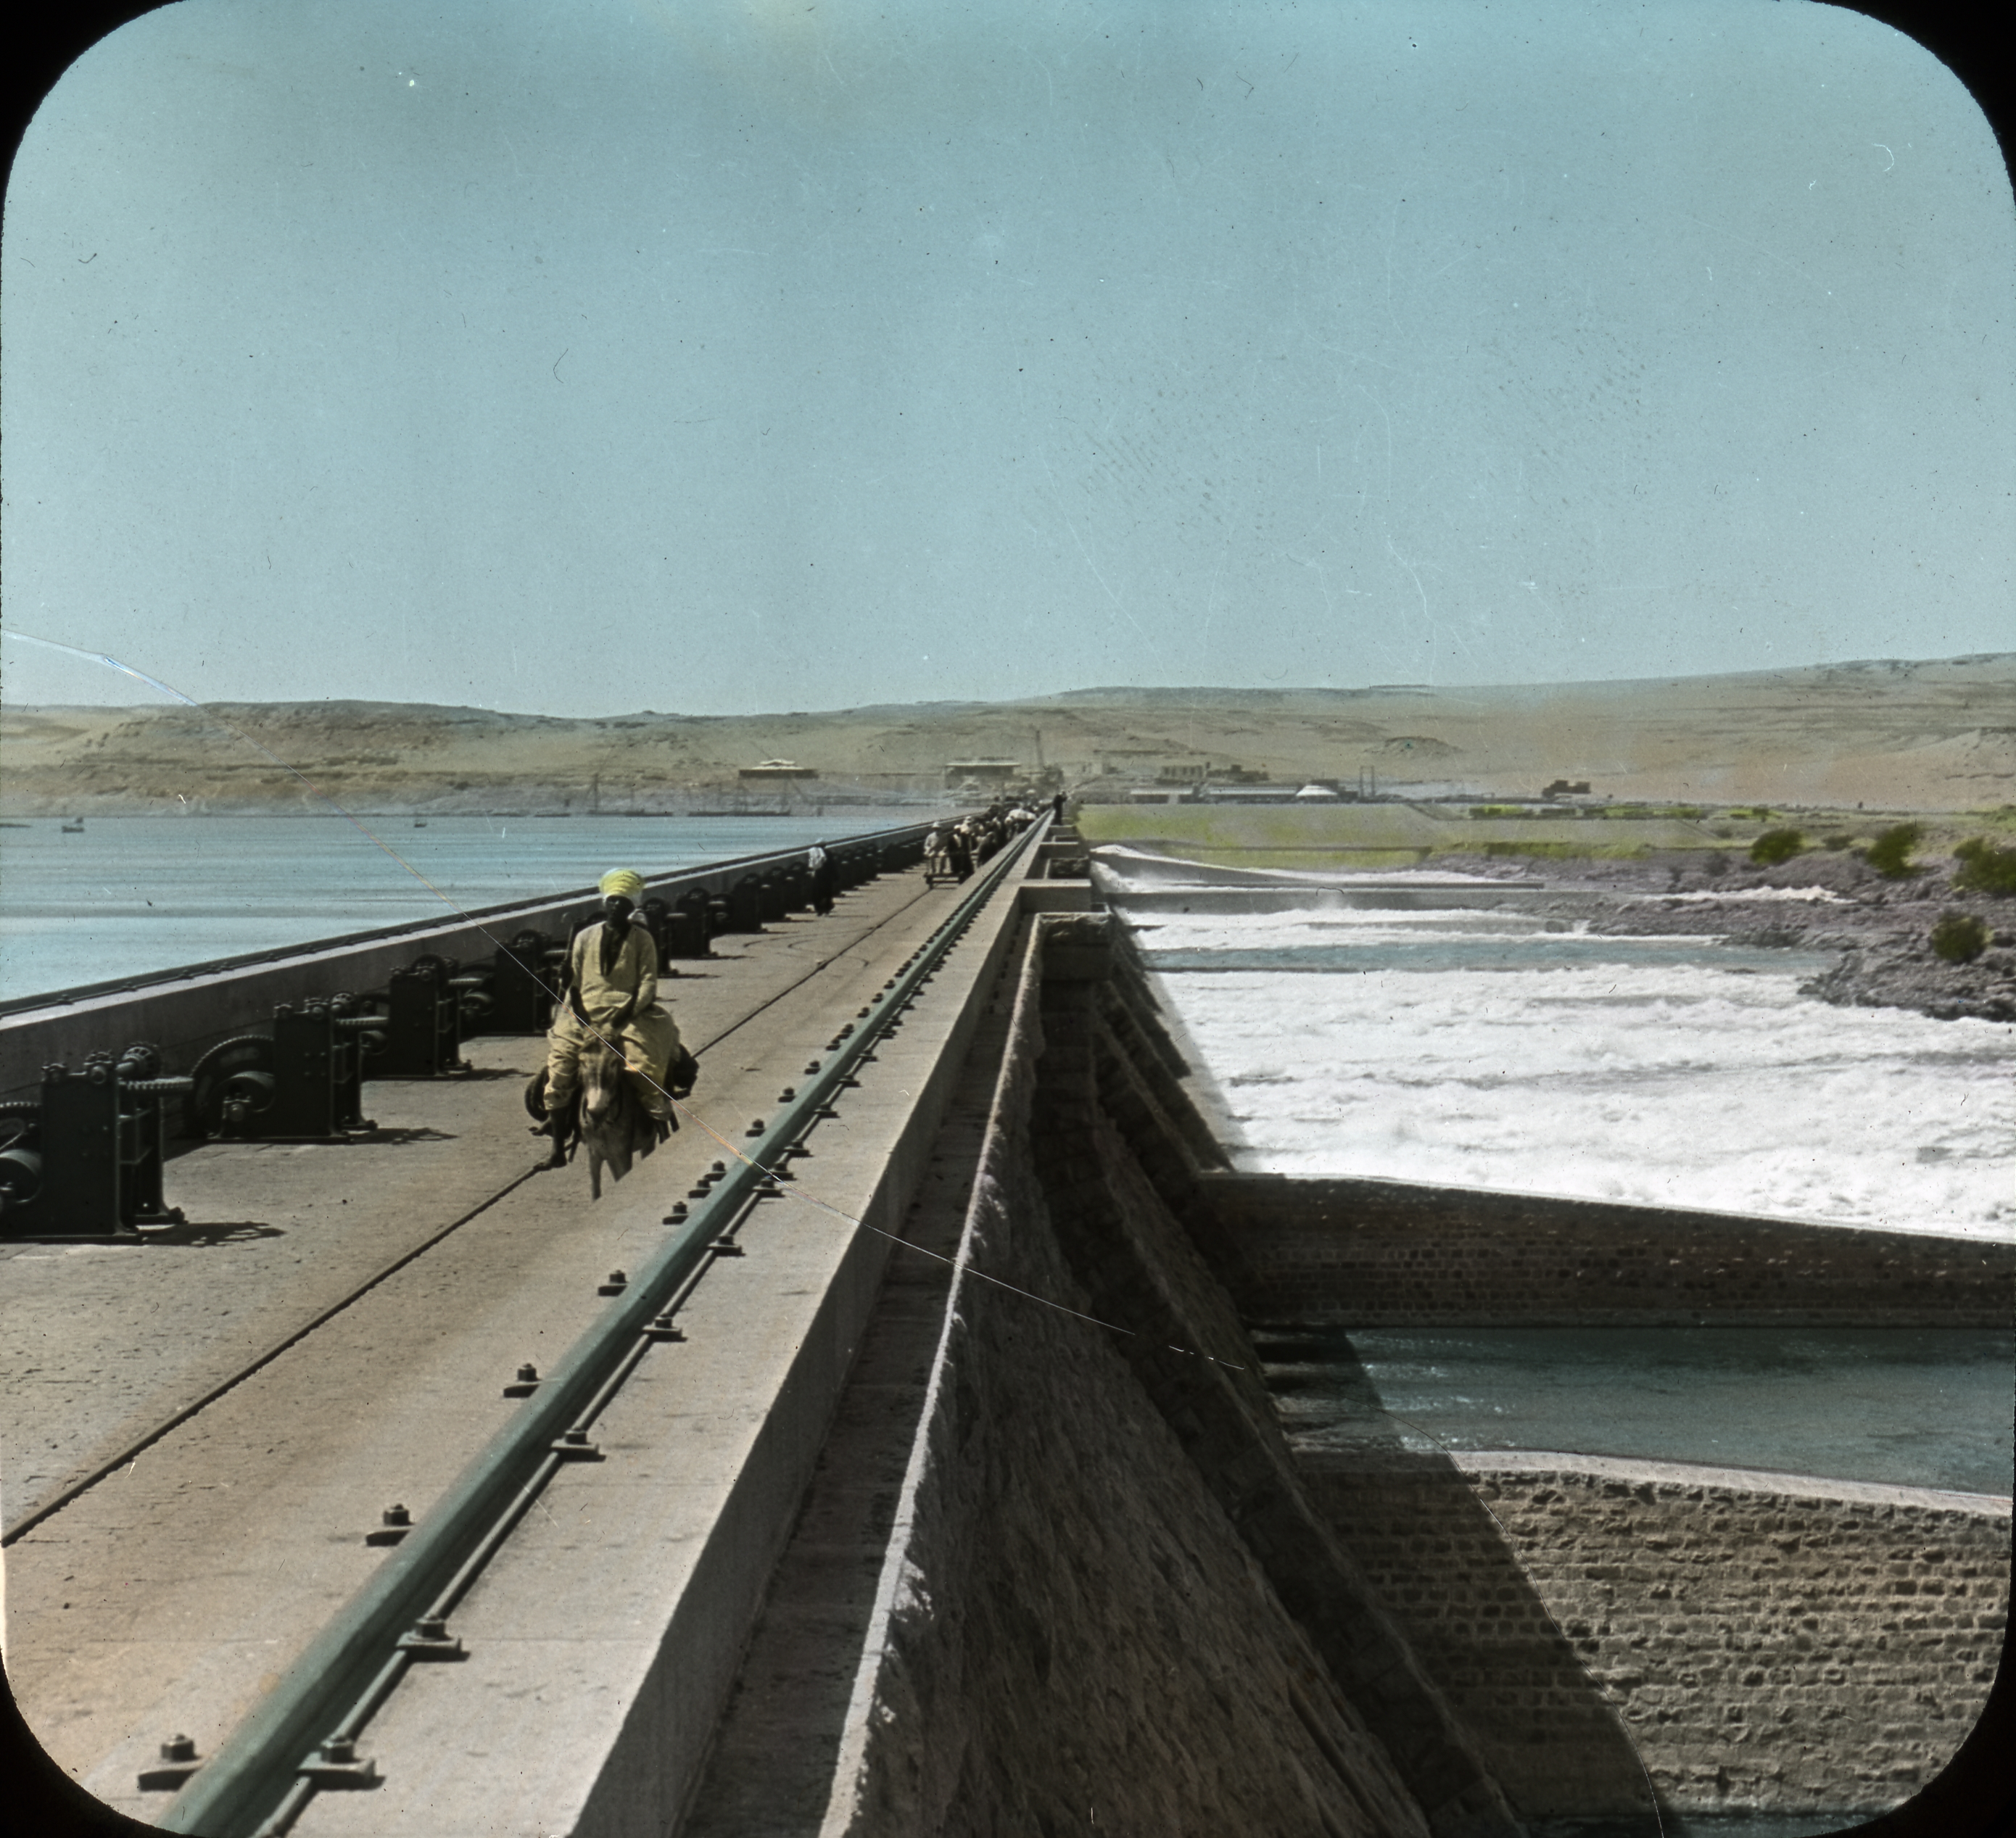 Egypt - Great Nile Dam (This is the Aswan Low Dam, not the High Dam that was built in the late 1950s---Editor)